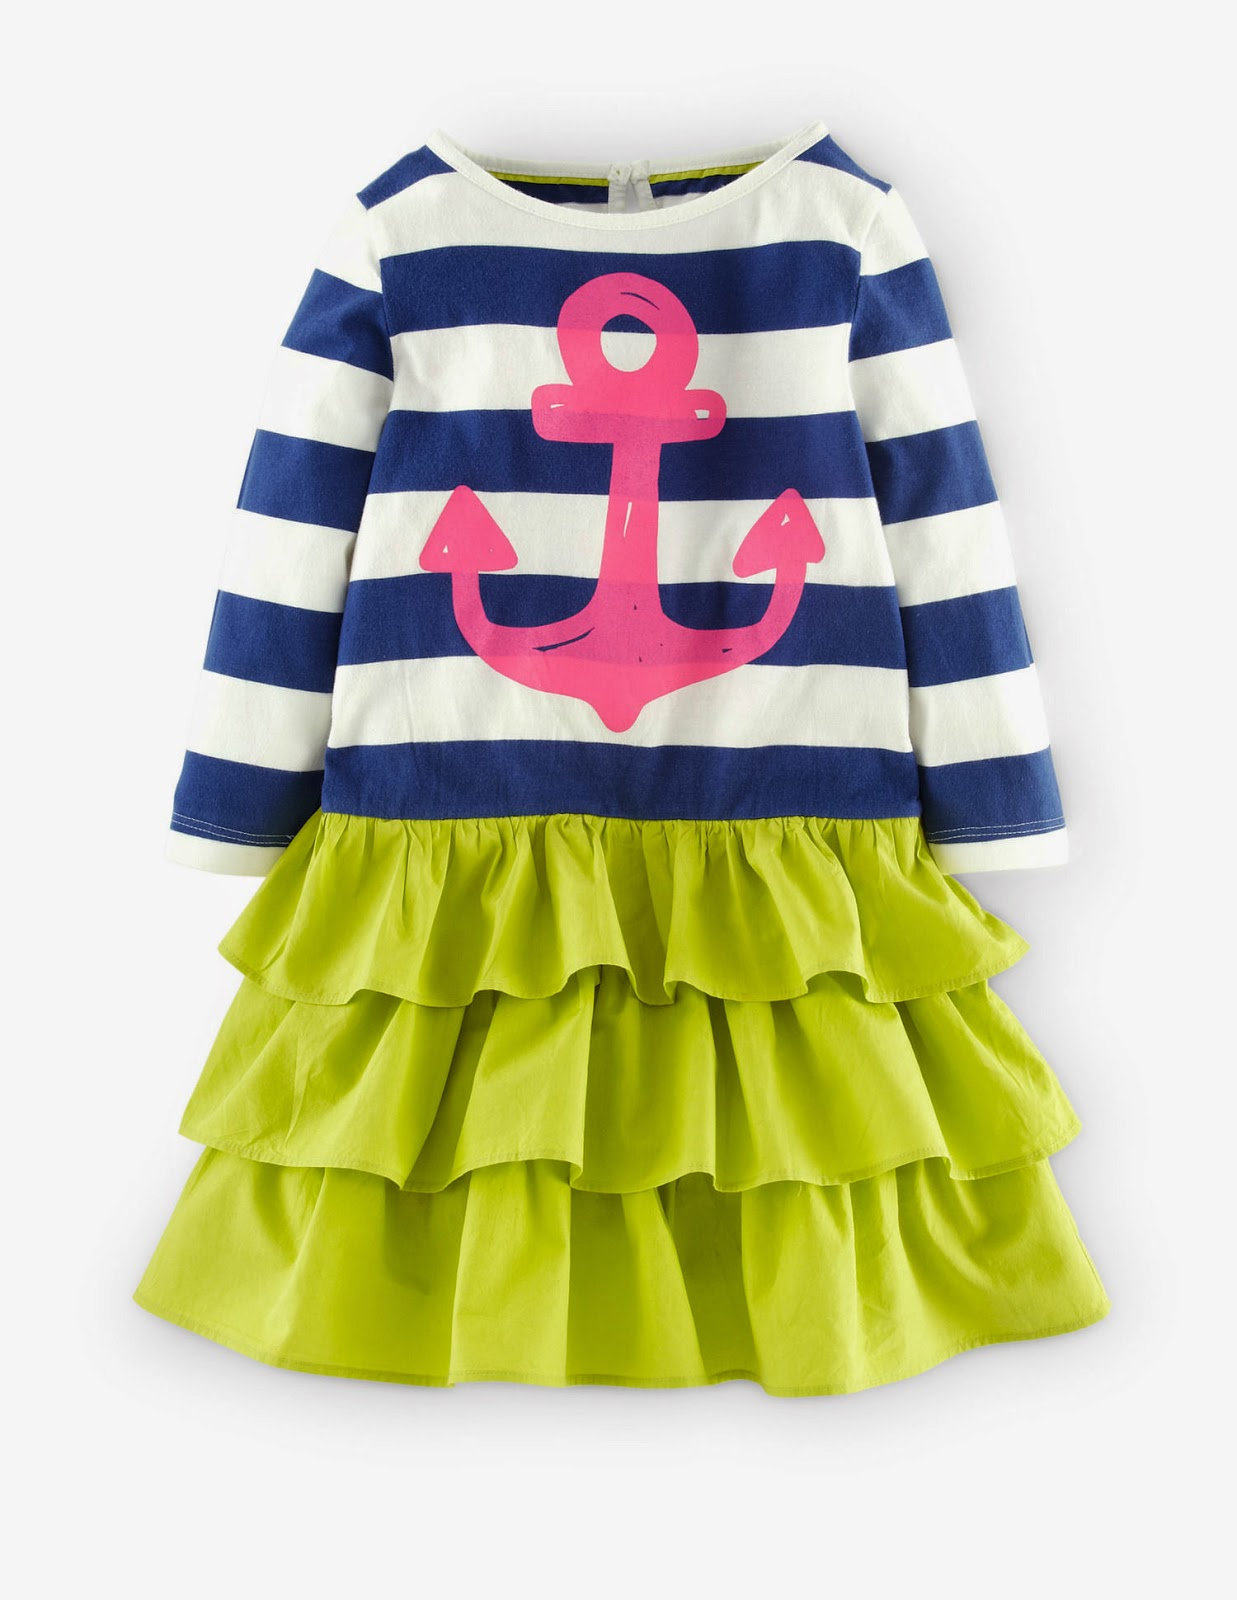 Boden Nautical New Arrivals Spring 2015